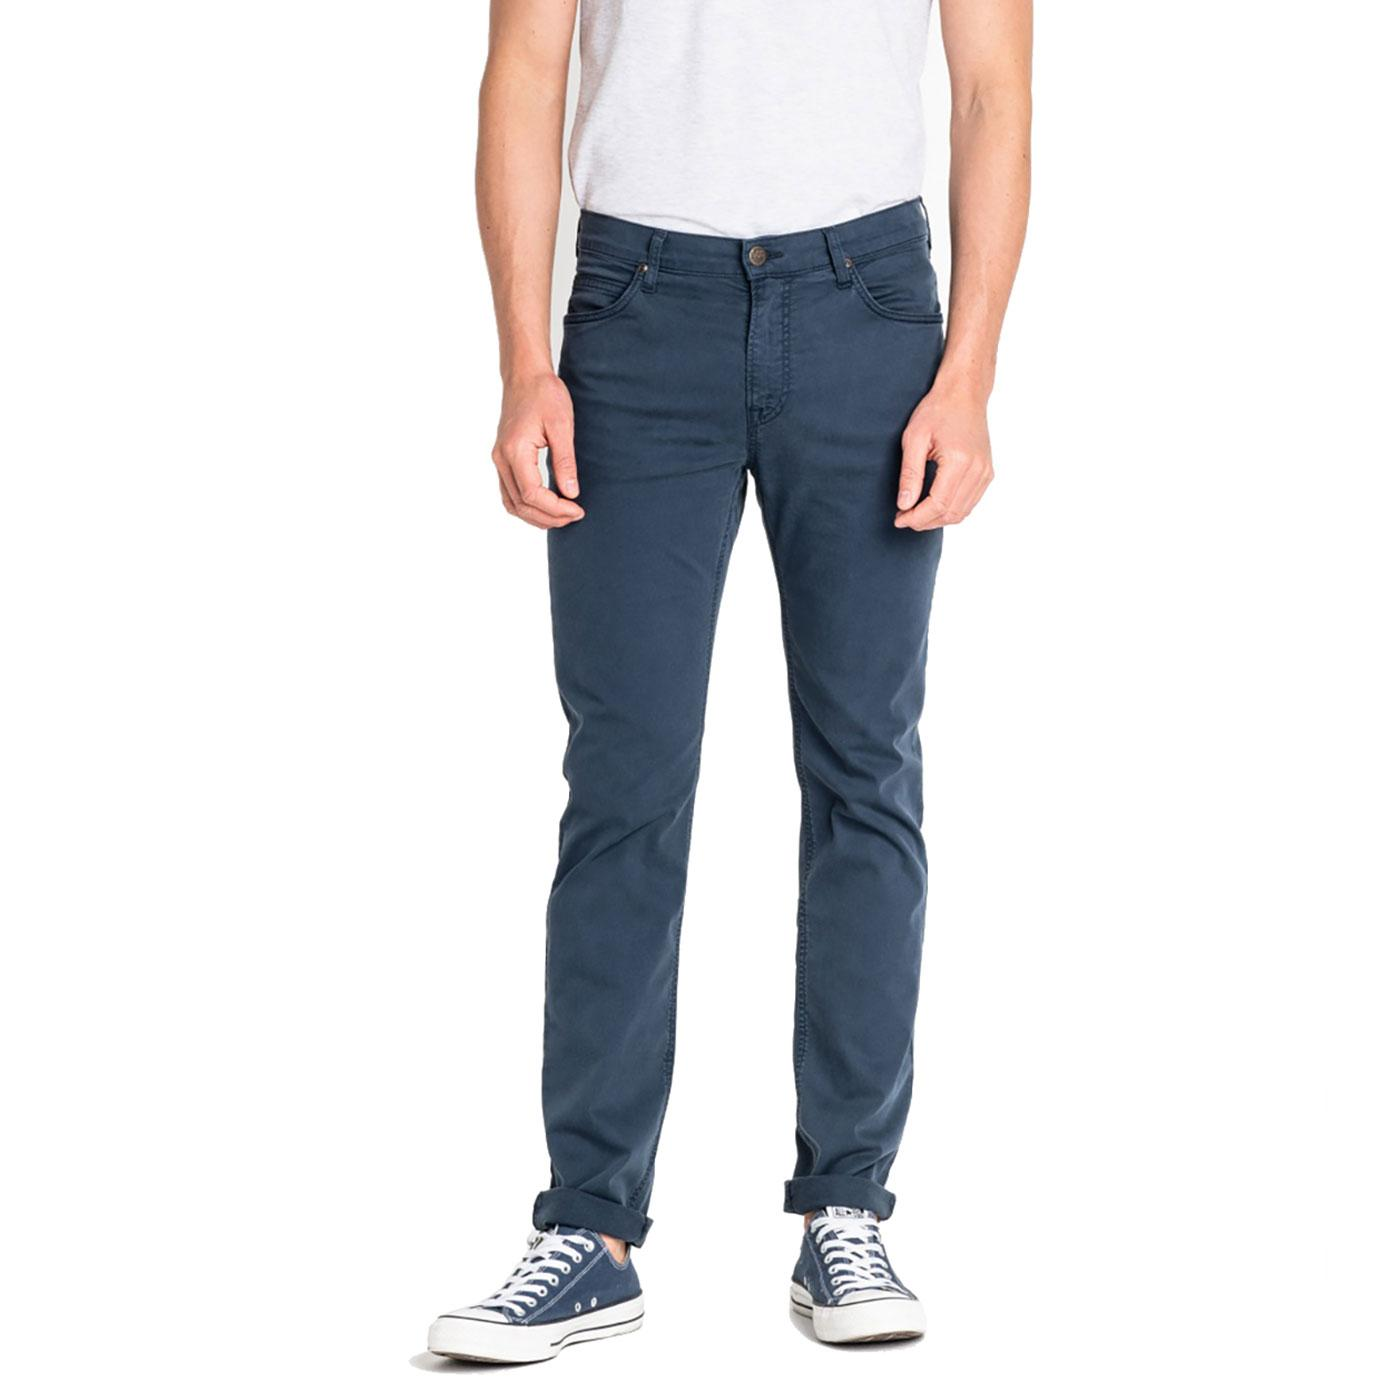 Rider LEE Men's Retro Slim Leg Chino Jeans - NAVY